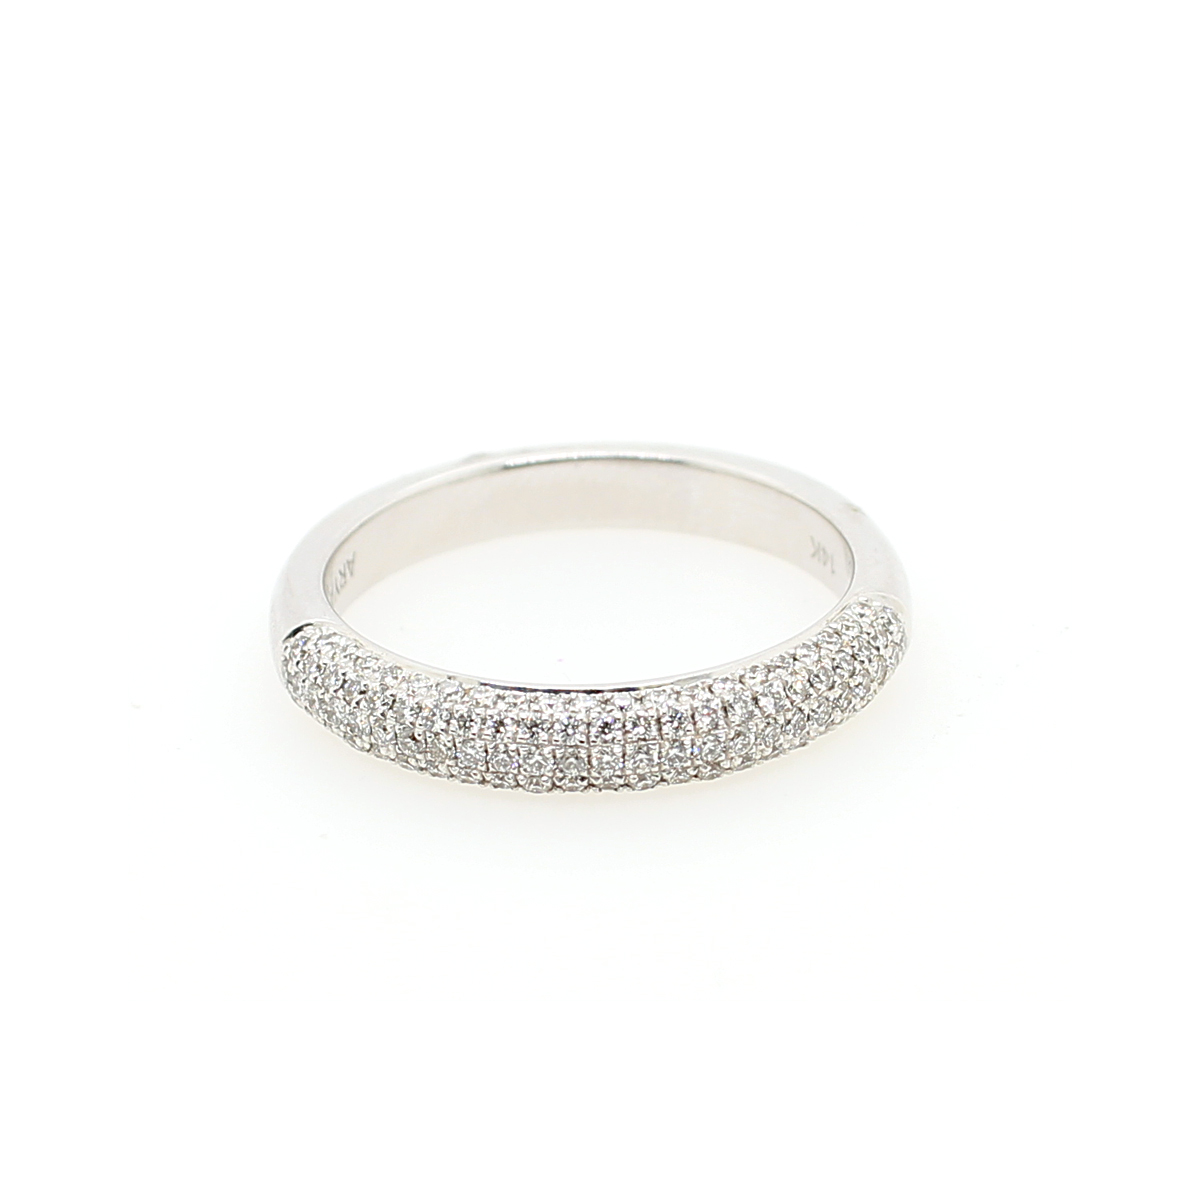 14 Karat White Gold Micro Pave Diamond Band